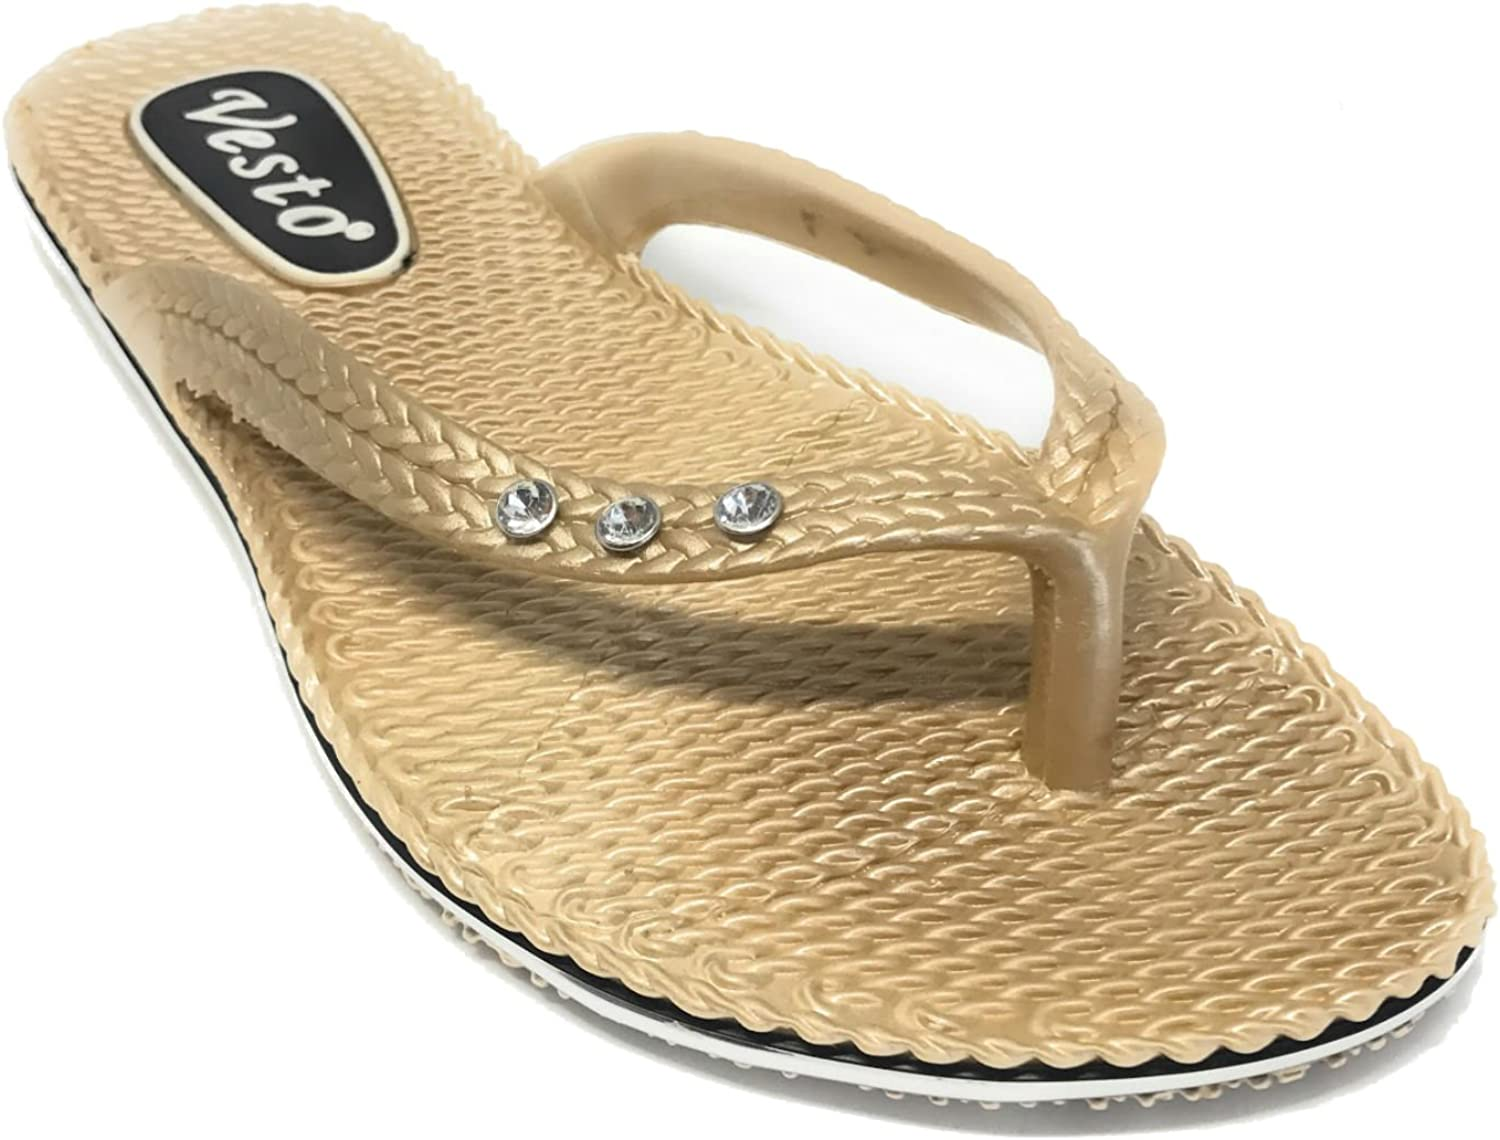 Vesto Ladies Metallic Comfort Flip Flop with Rhinestone